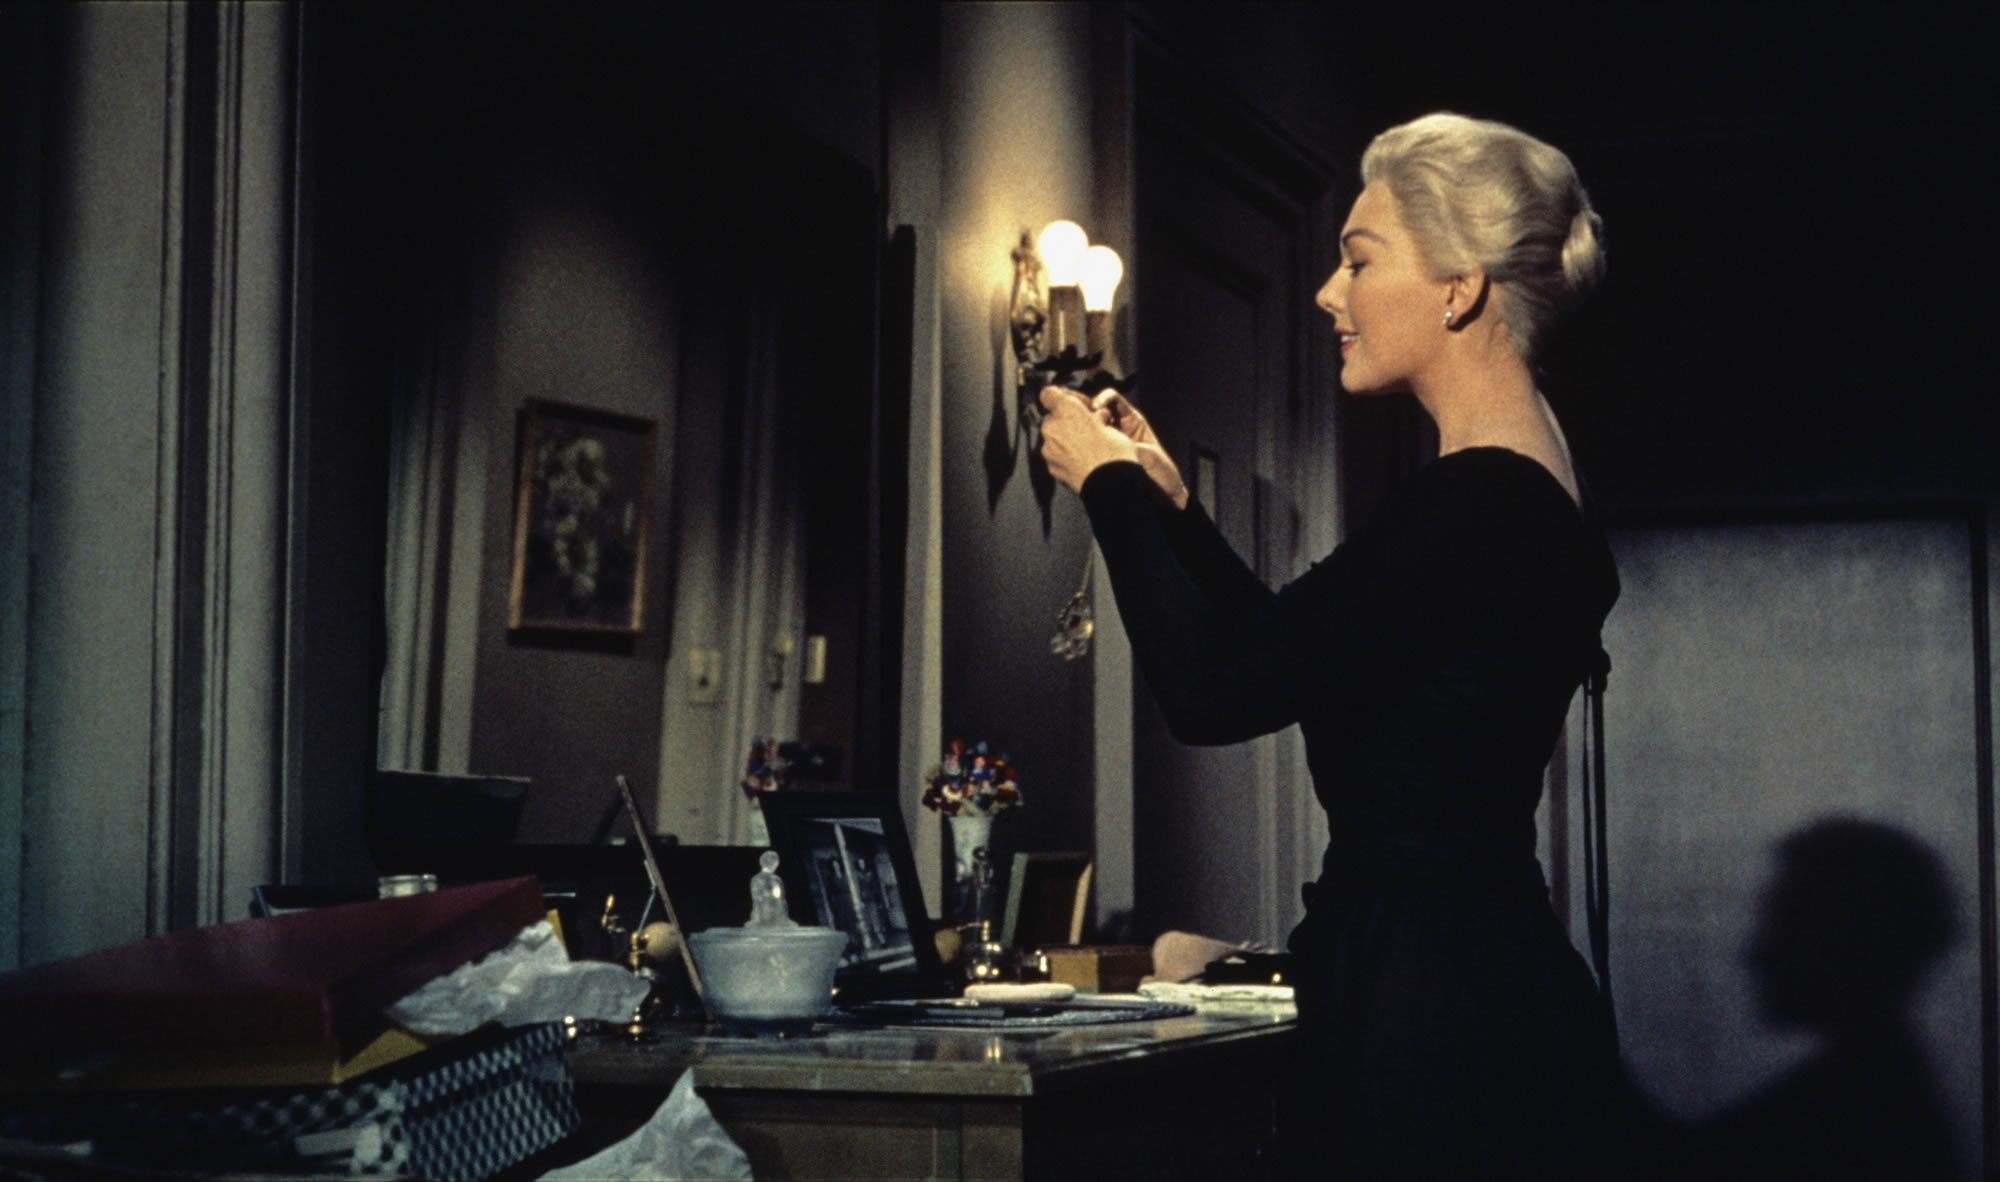 Kim Novak wears one of the most famous black dresses in film history, an Edith Head design for Alfred Hitchcock's classic 1958 thriller. The film posed an unusual challenge since Head had to dress Novak as two different characters.